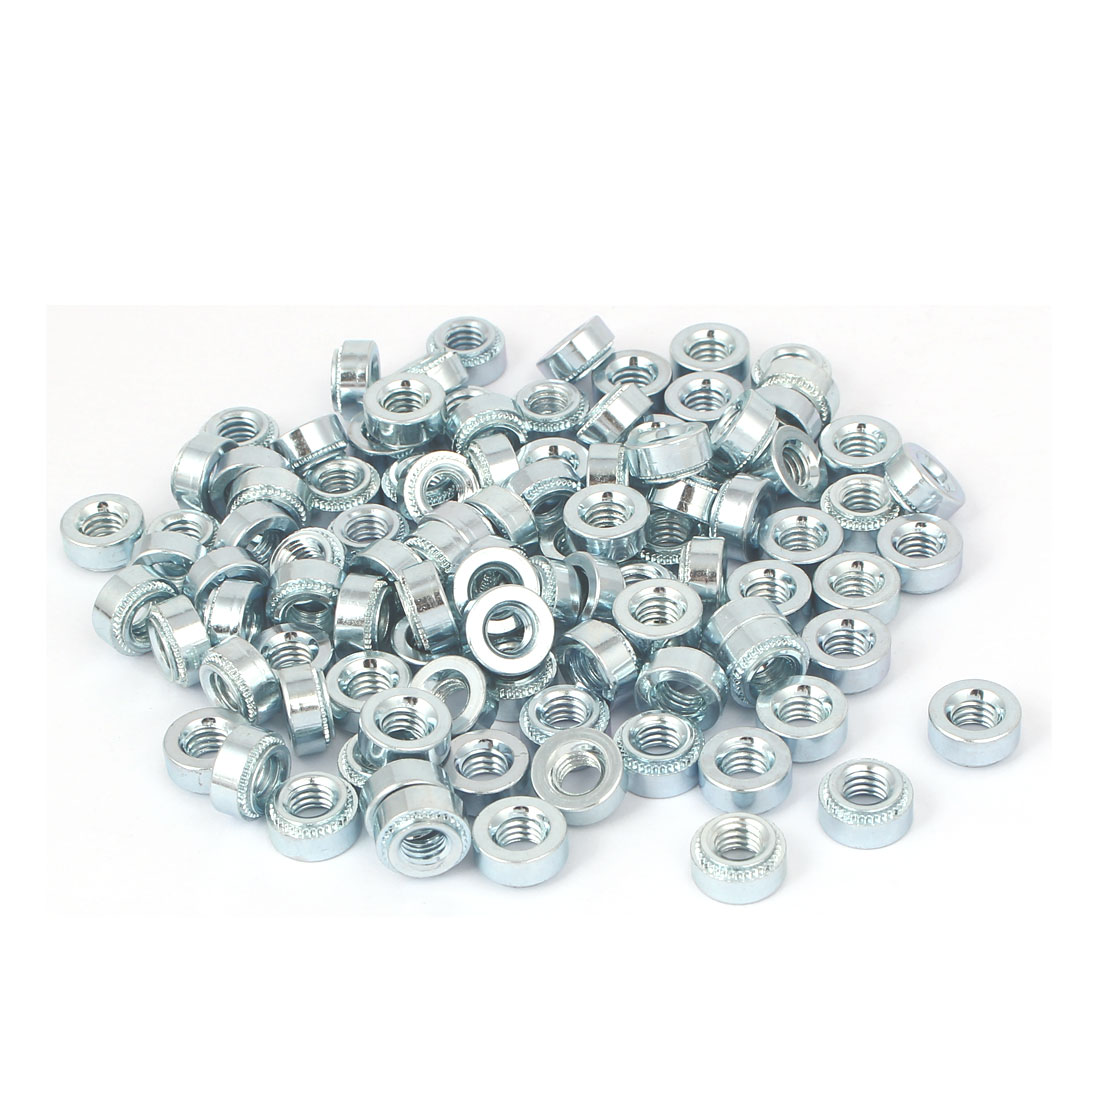 S-M6-1 Carbon Steel Self Clinching Rivet Nut Fastener 100pcs for 1.4mm Thin Plates